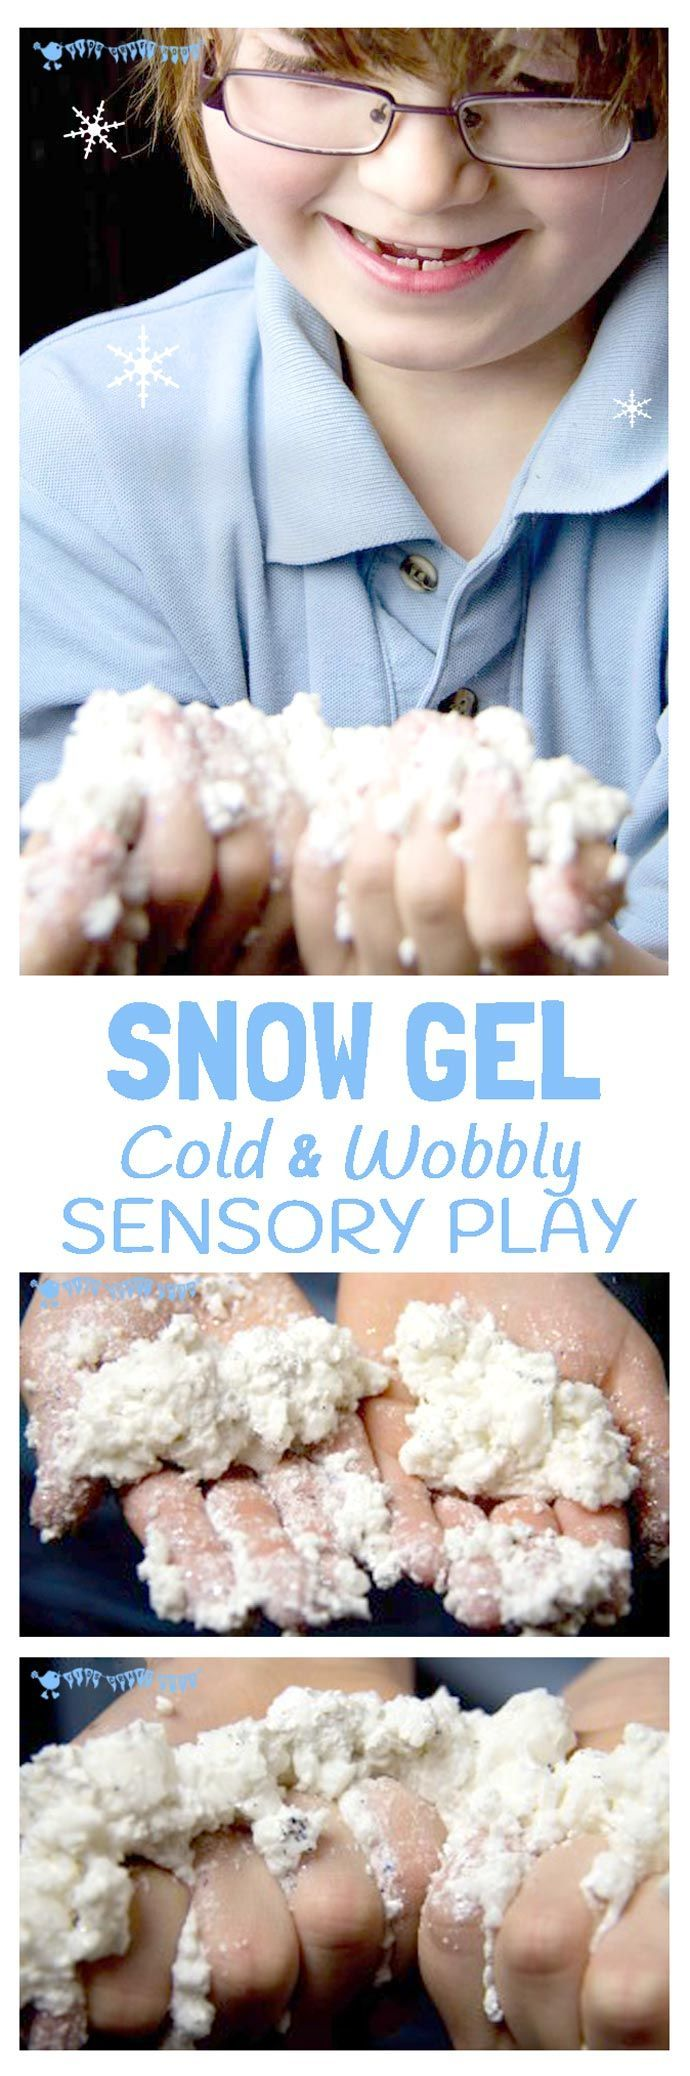 Cold, wobbly, sparkly Snow Gel; a wonderfully rich Winter sensory play experience.